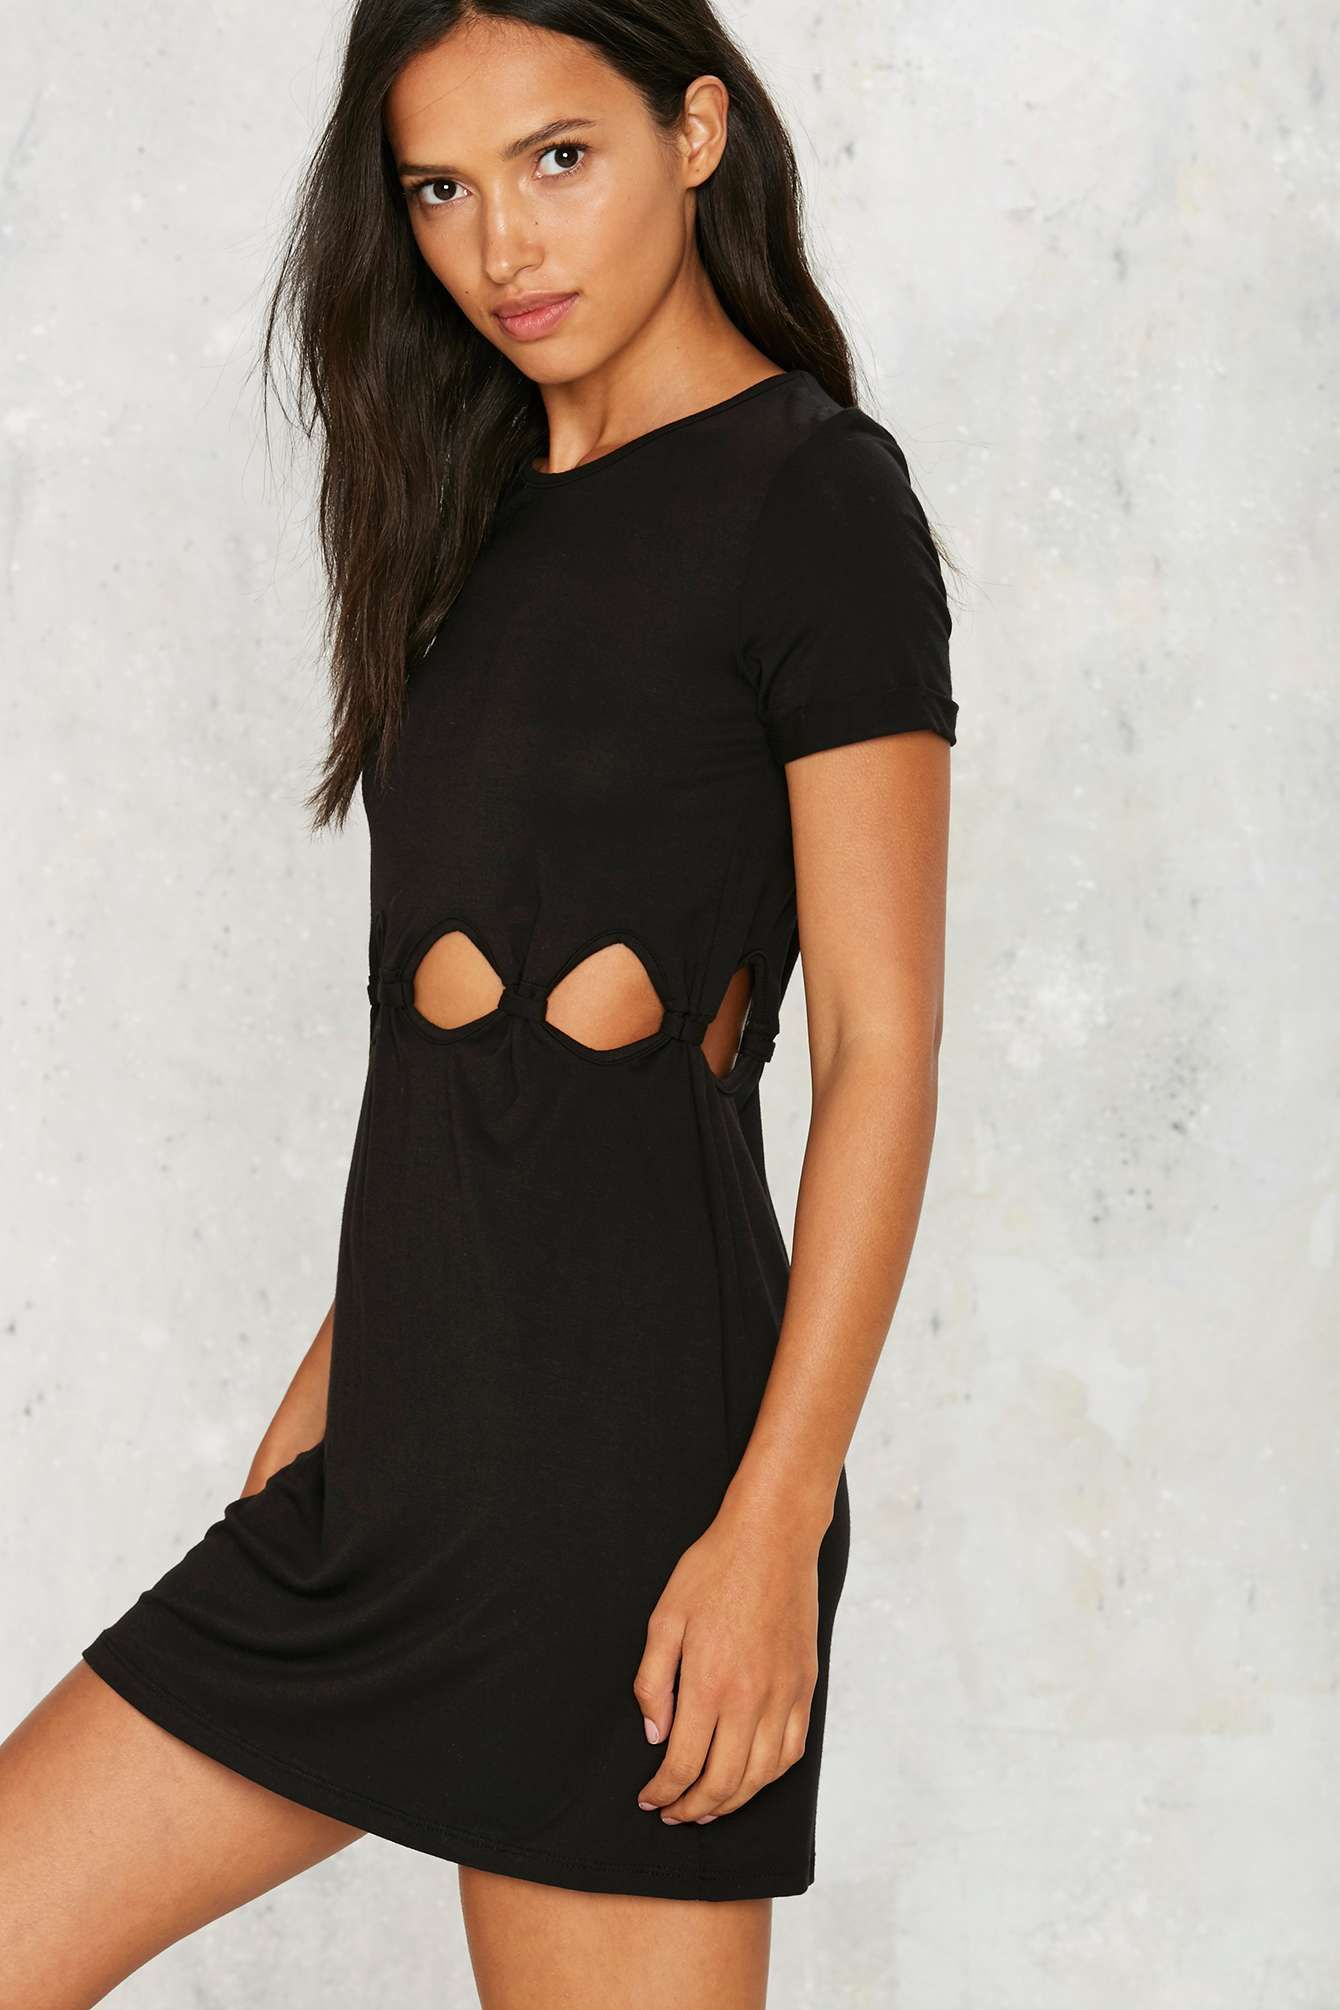 Stay coolinu not foolinu the hole lotta love dress comes in black